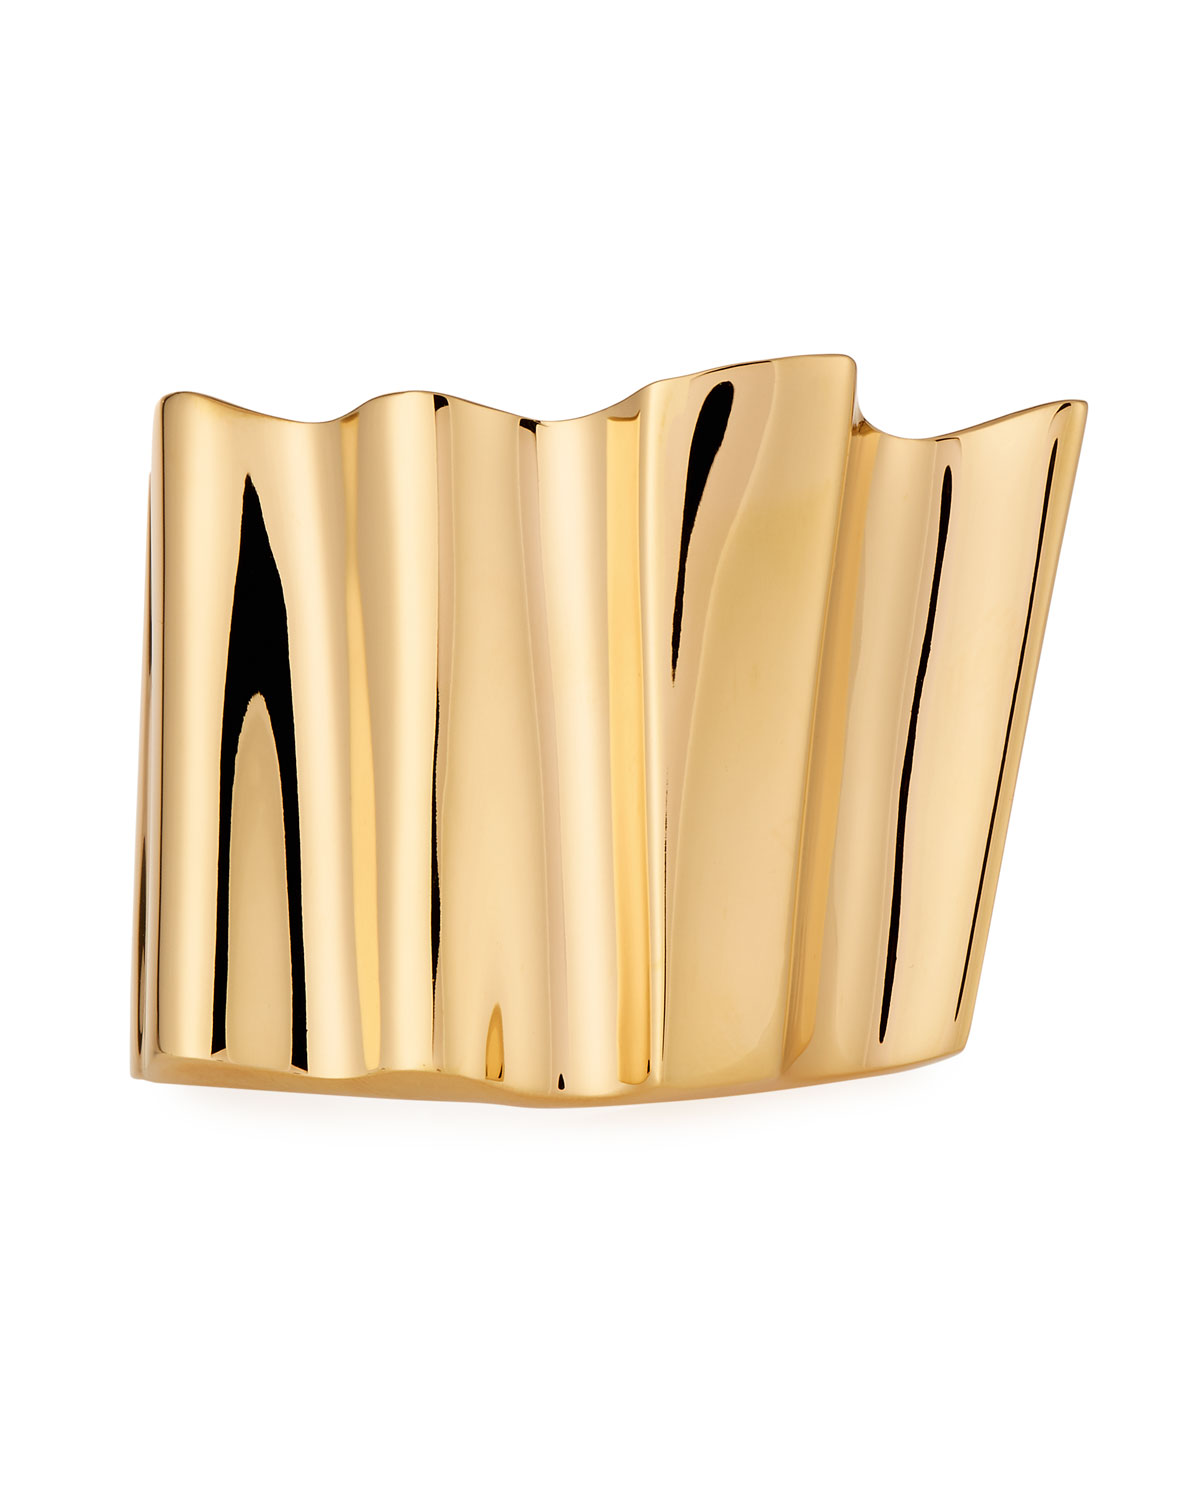 Ruffle Cuff Bracelet by Saint Laurent